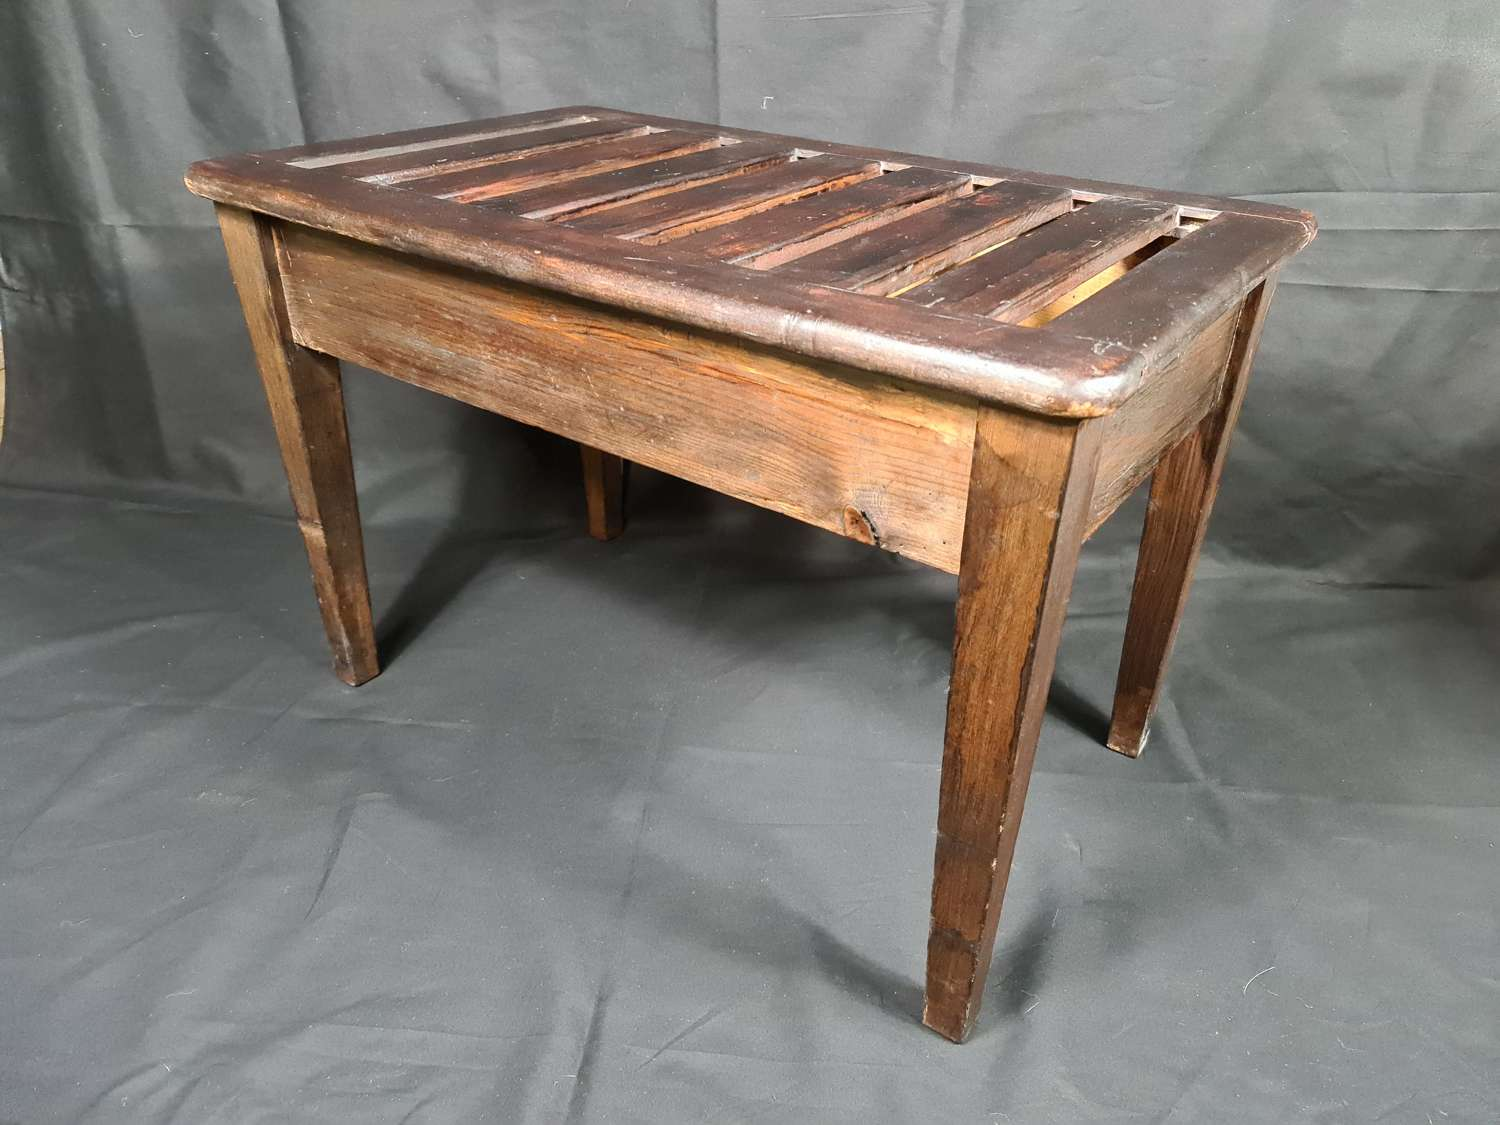 Antique Luggage Rack for Bedroom or Hall